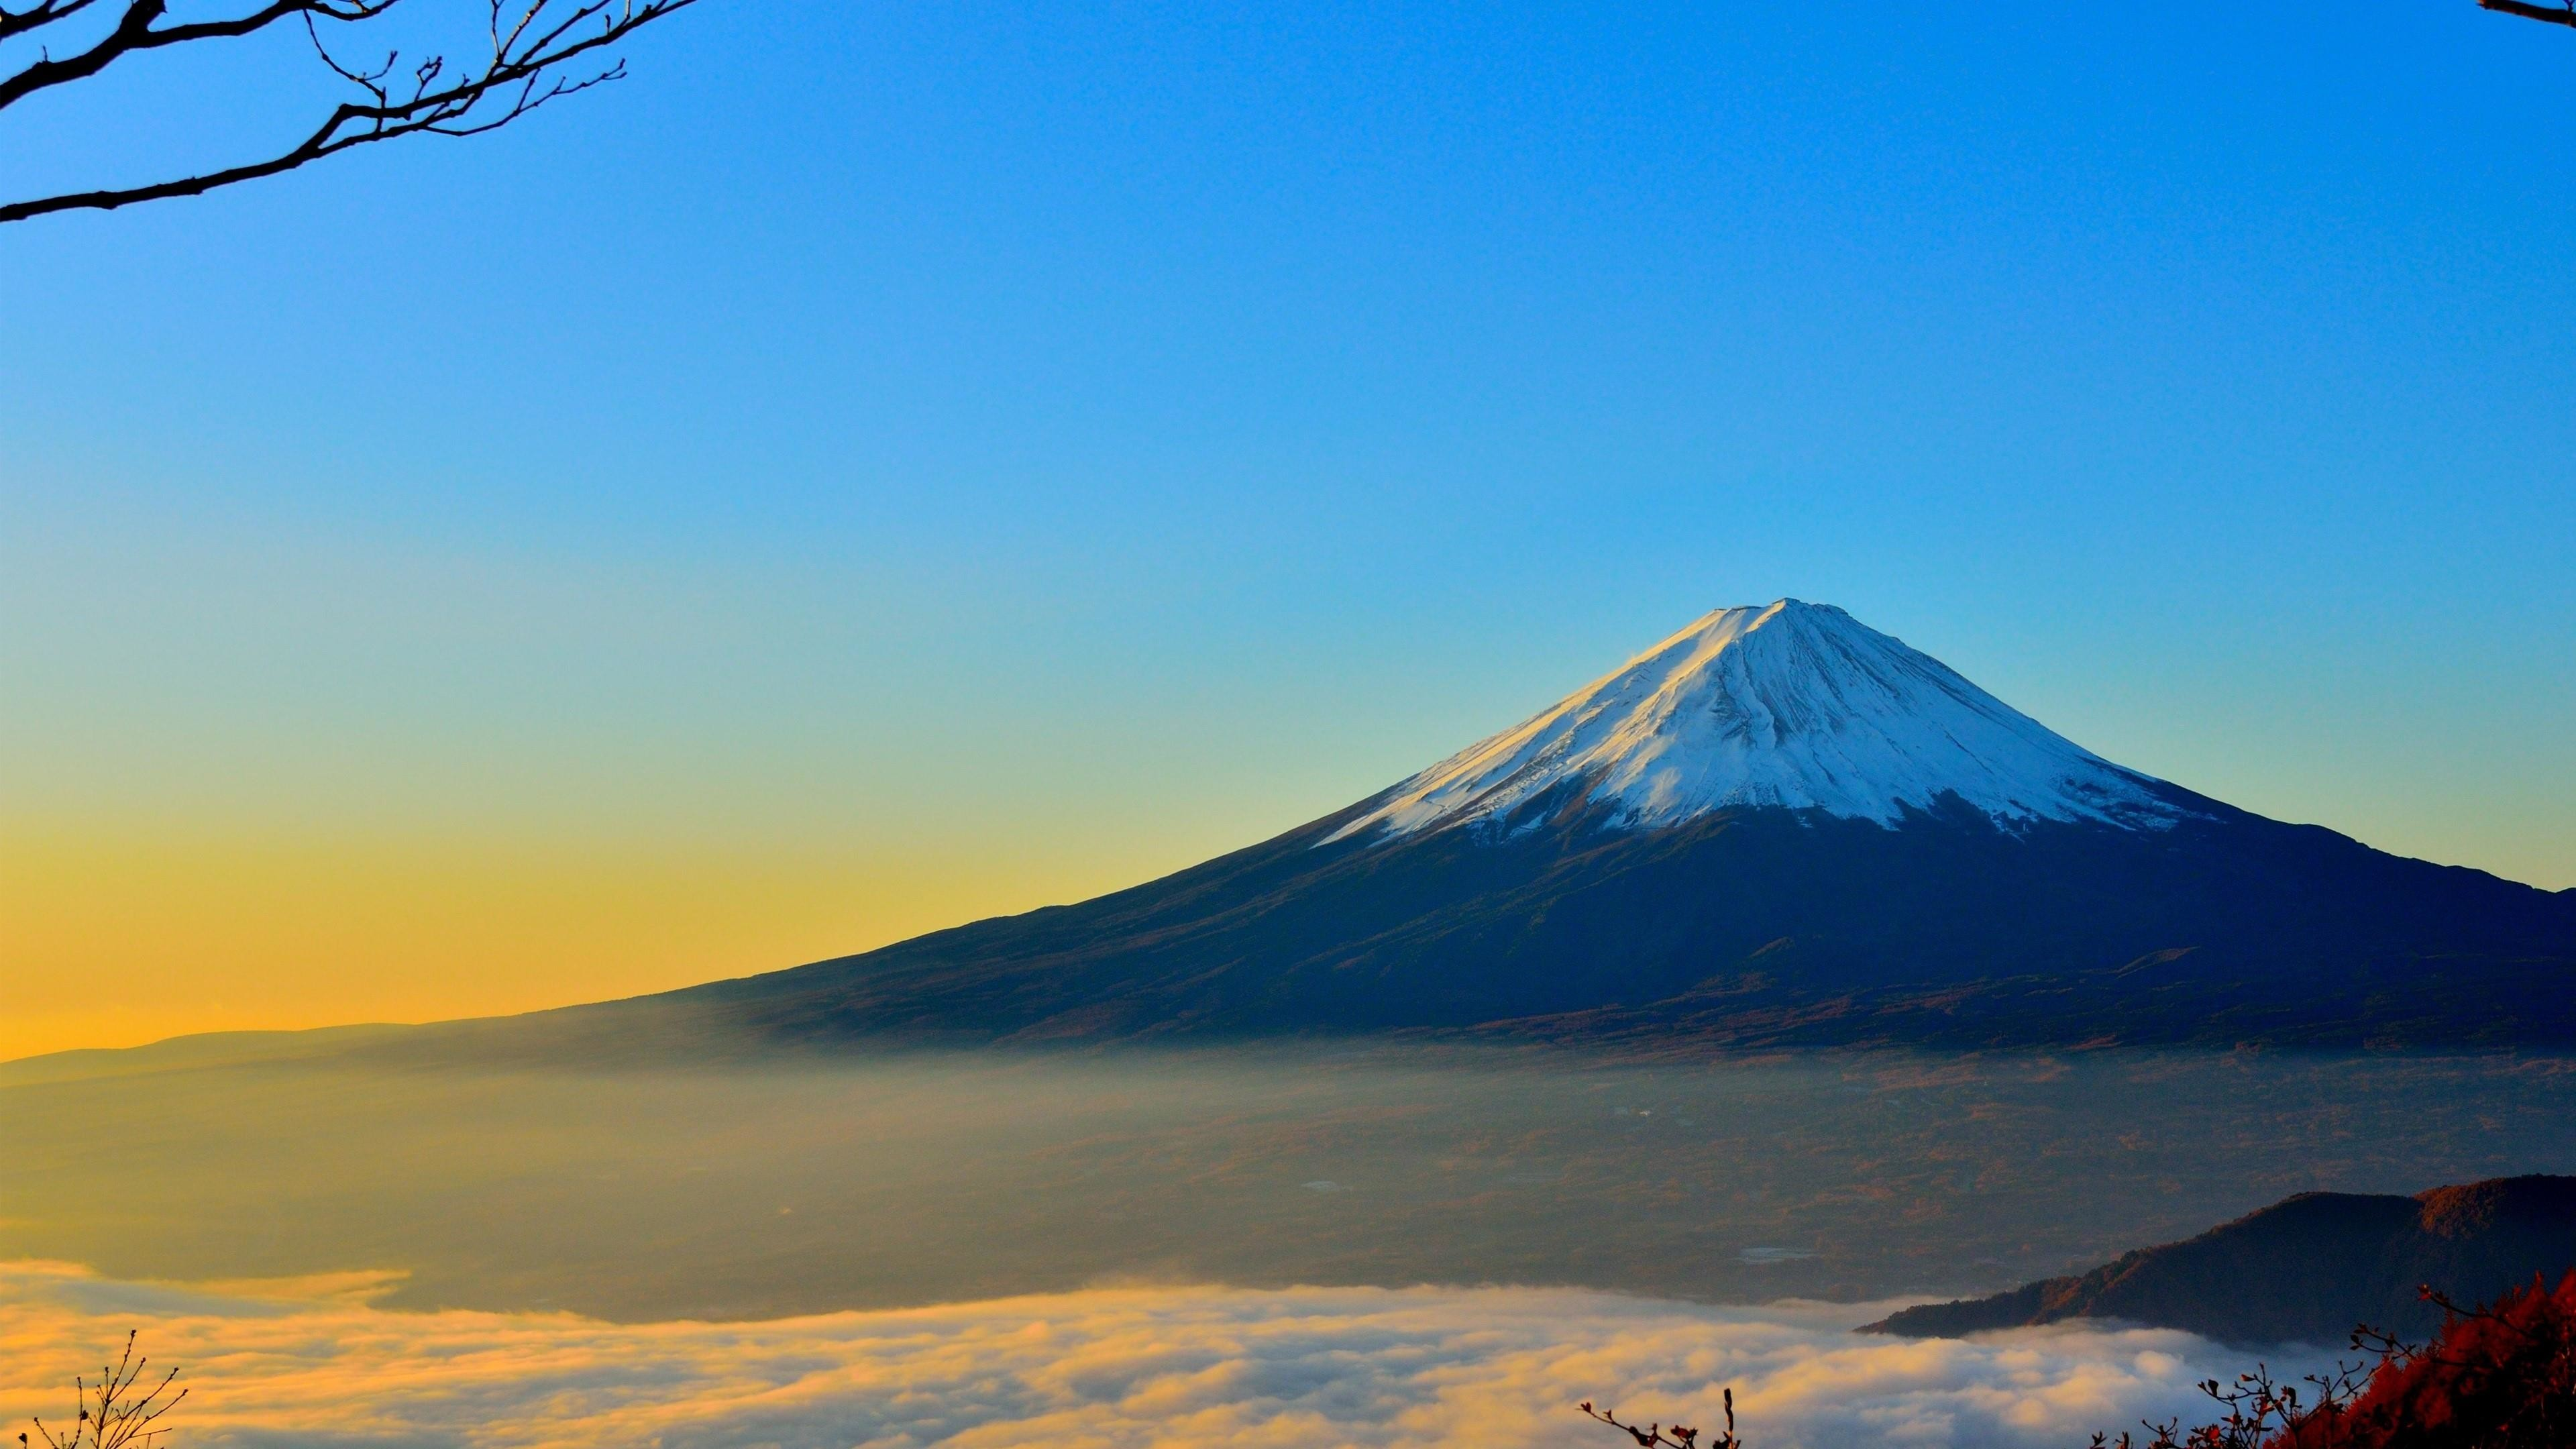 Res: 3840x2160, Mount Fuji - Japan Wallpaper   Wallpaper Studio 10   Tens of thousands HD  and UltraHD wallpapers for Android, Windows and Xbox